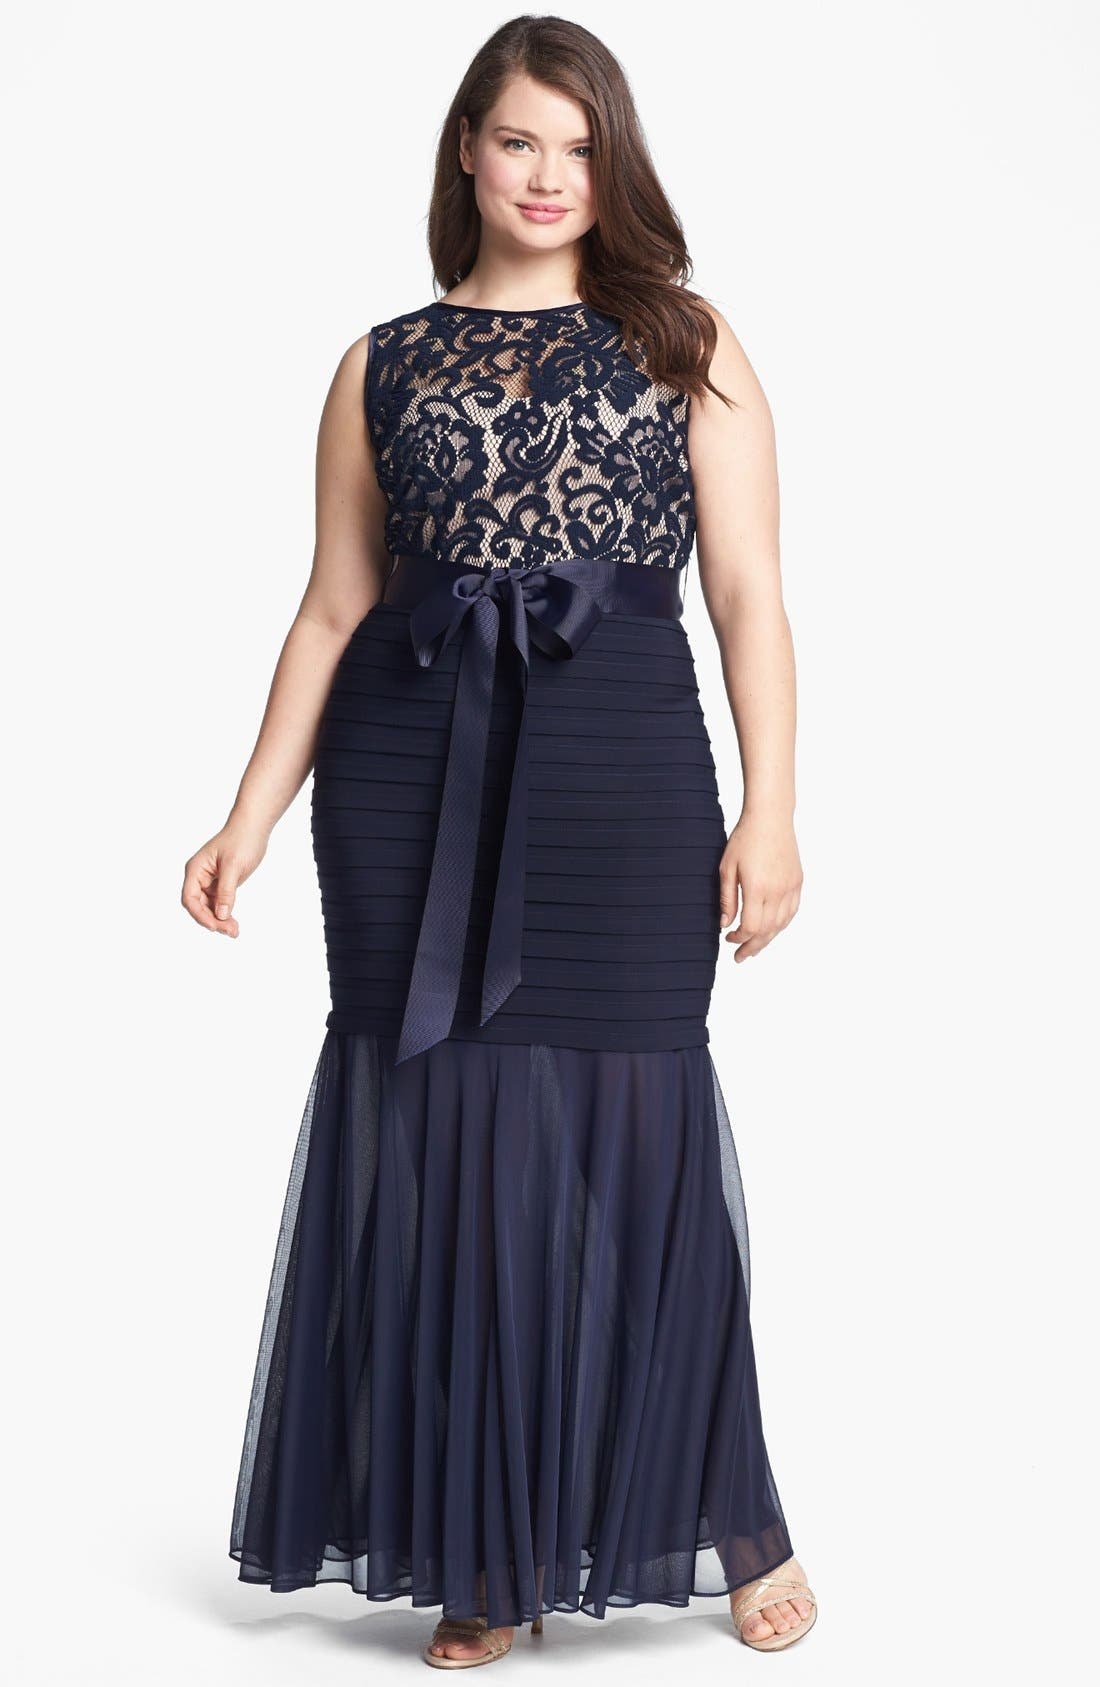 Alternate Image 1 Selected - Betsy & Adam Lace Banded Mermaid Gown (Plus Size)